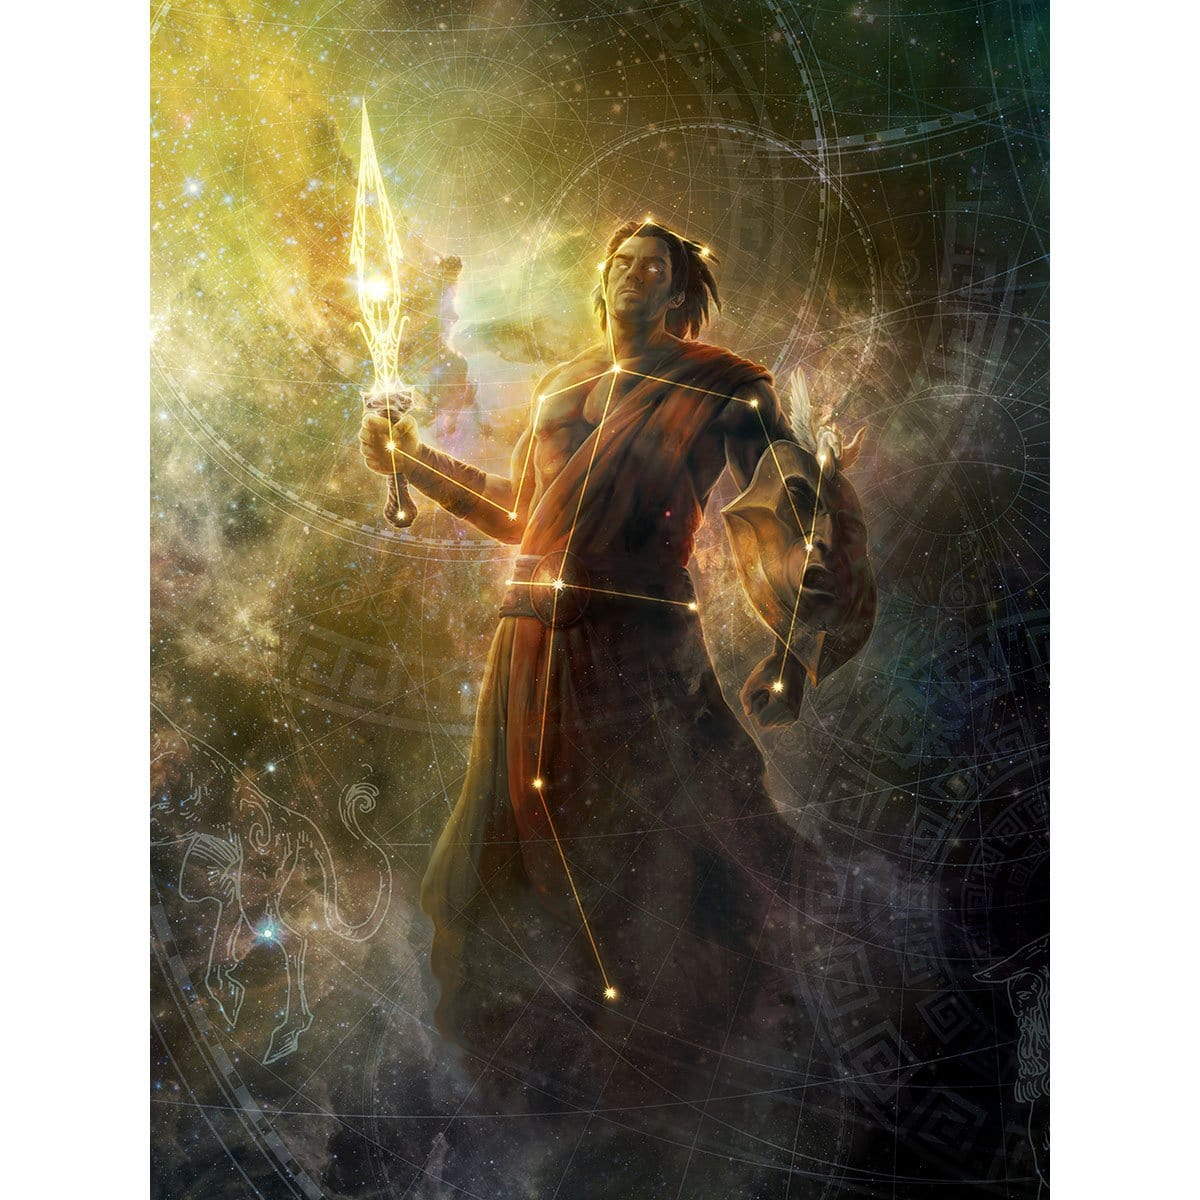 Daxos, Blessed by the Sun Print - Print - Original Magic Art - Accessories for Magic the Gathering and other card games